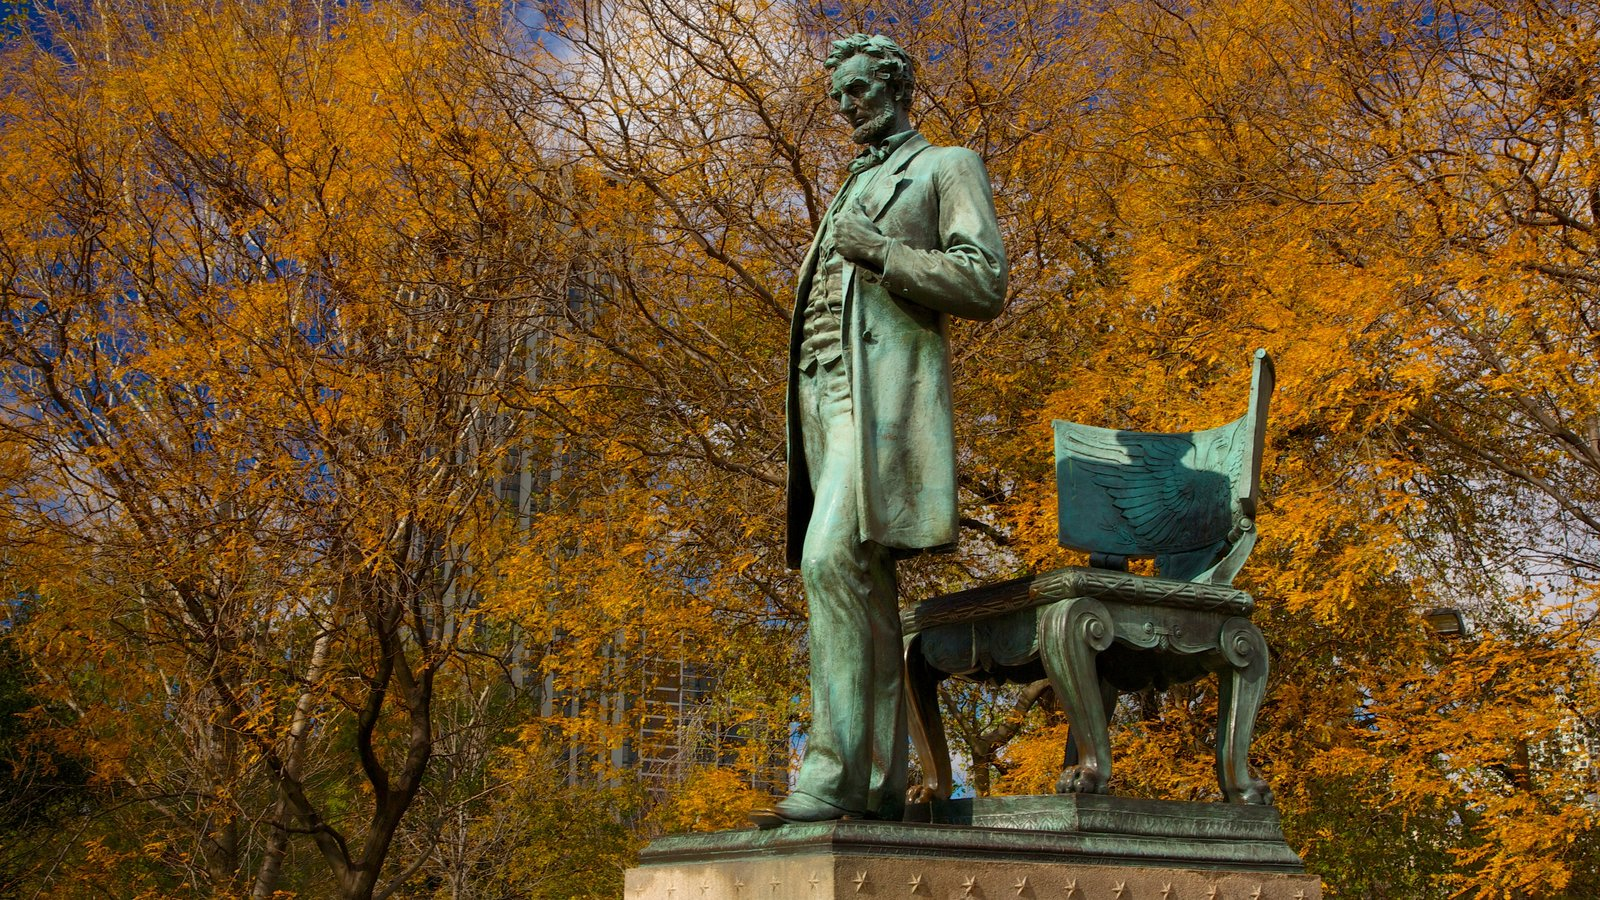 Lincoln Park showing a statue or sculpture, fall colors and a garden